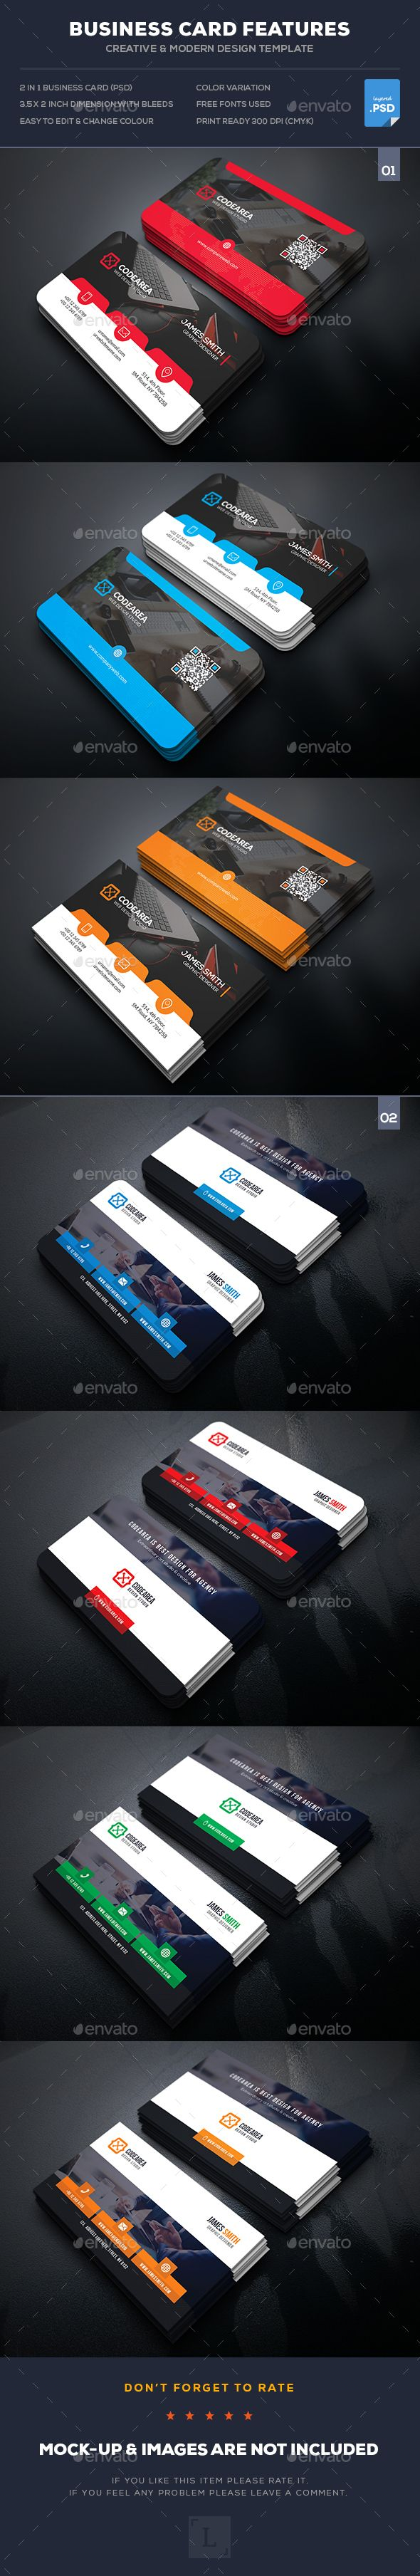 143 best Business Cards images on Pinterest